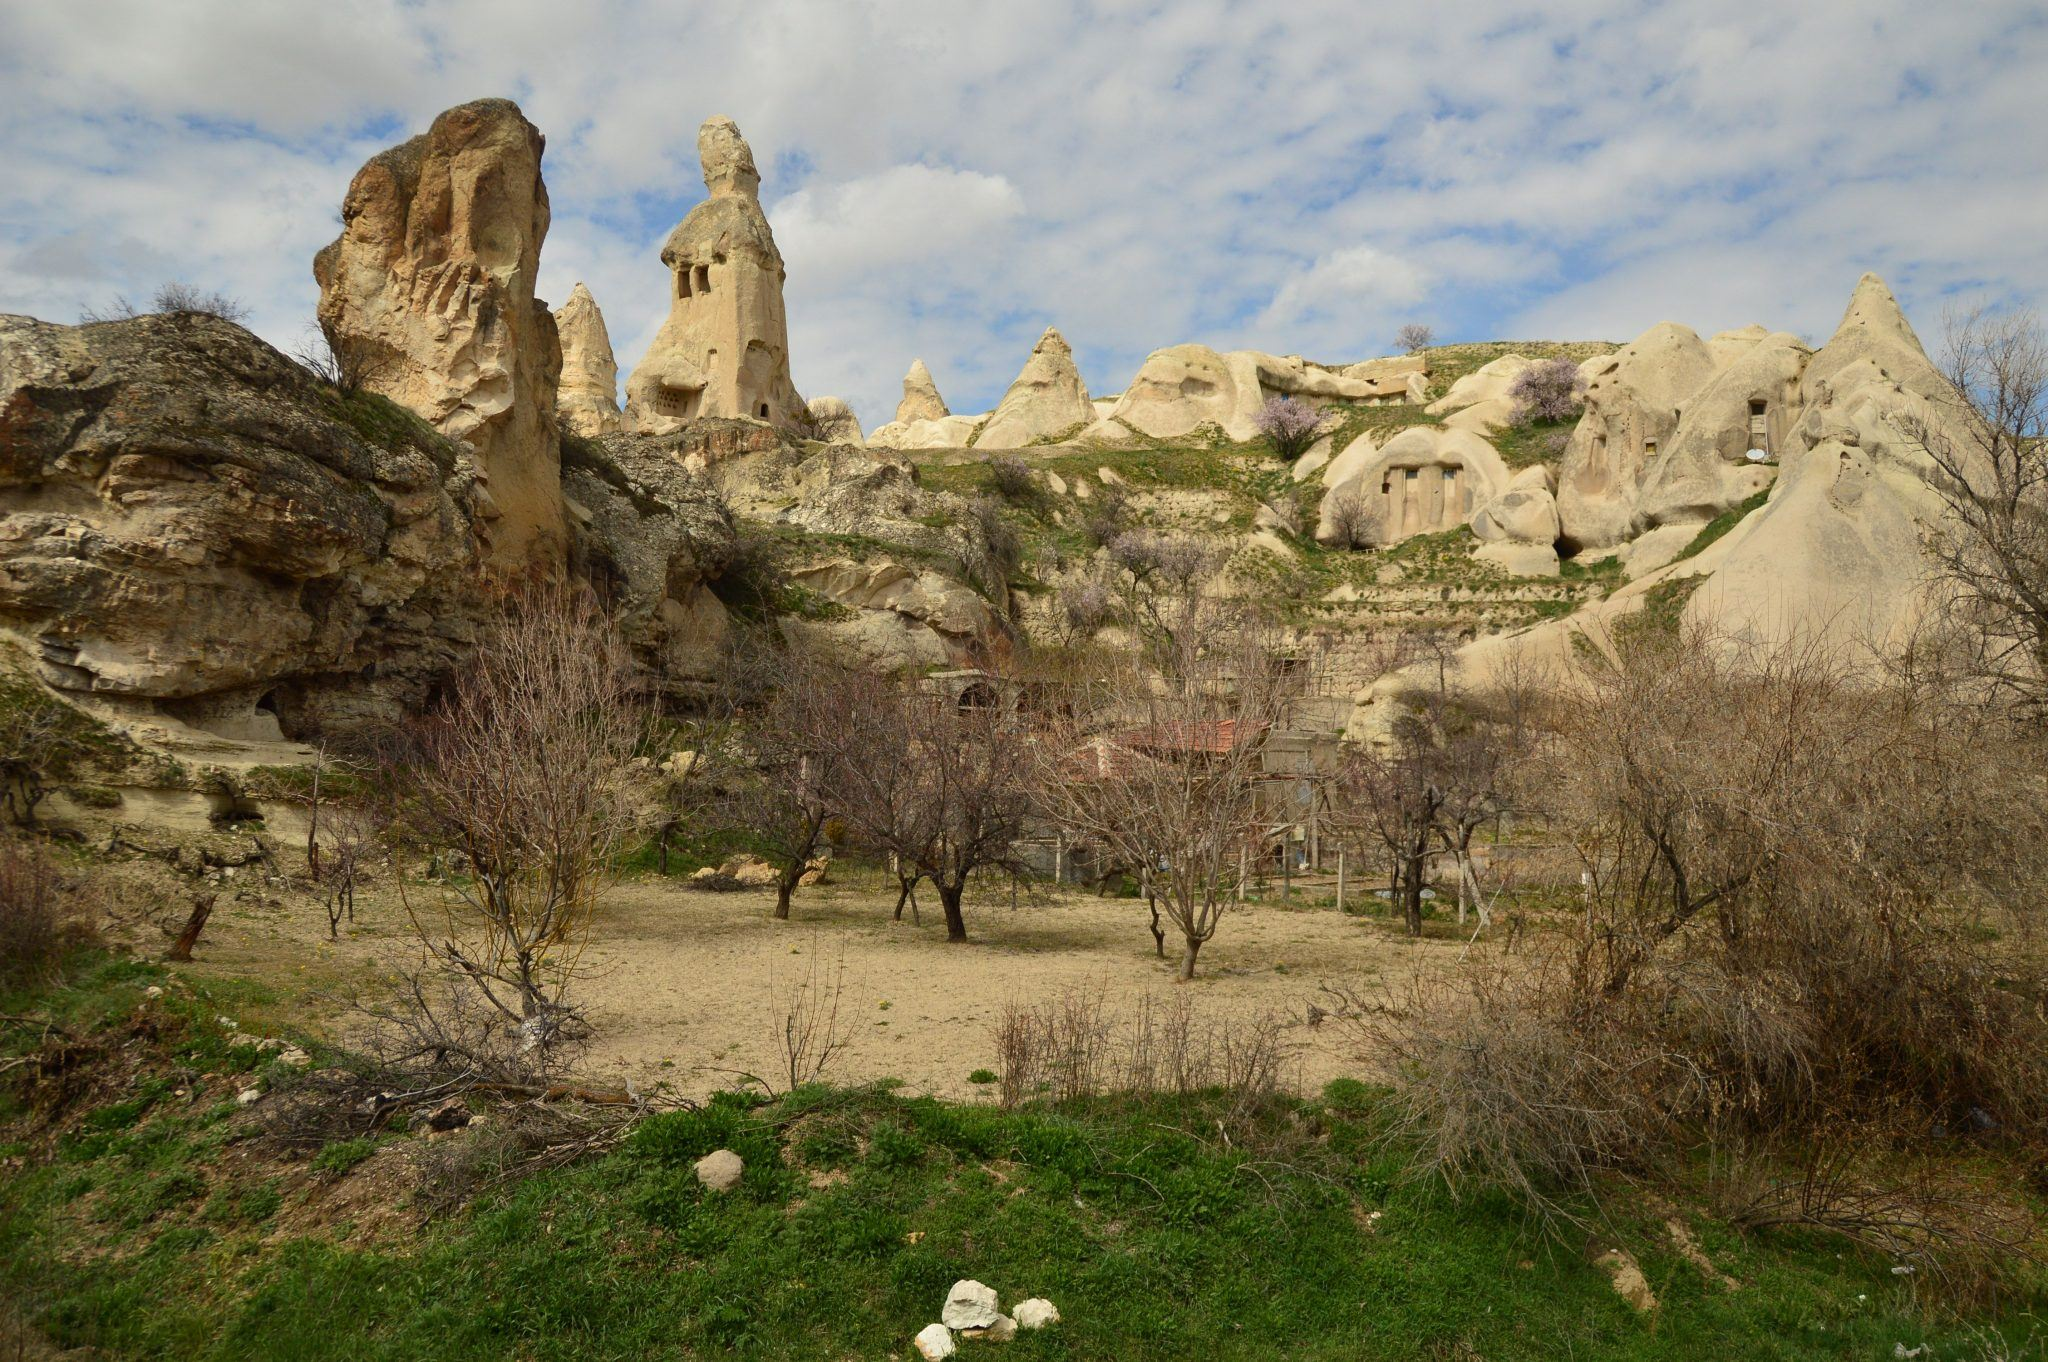 fairy castles in the Pigeon Valley - part of my Cappadocia Itinerary